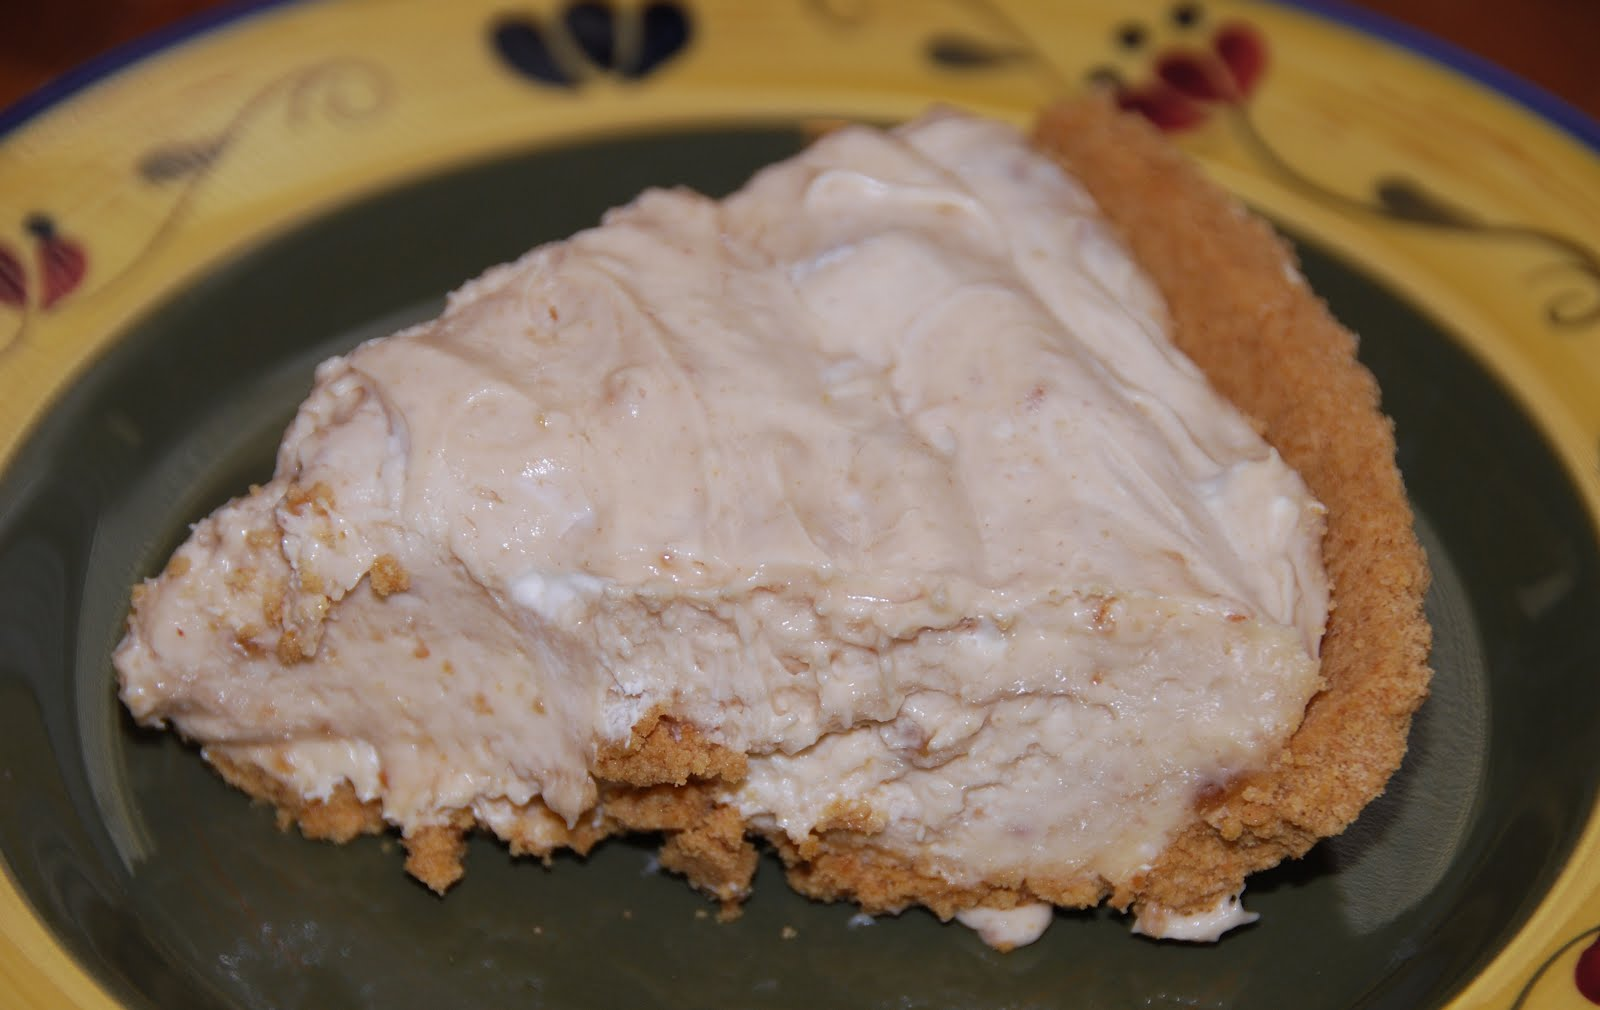 All Things Crafty!: No Bake Peanut Butter Pie